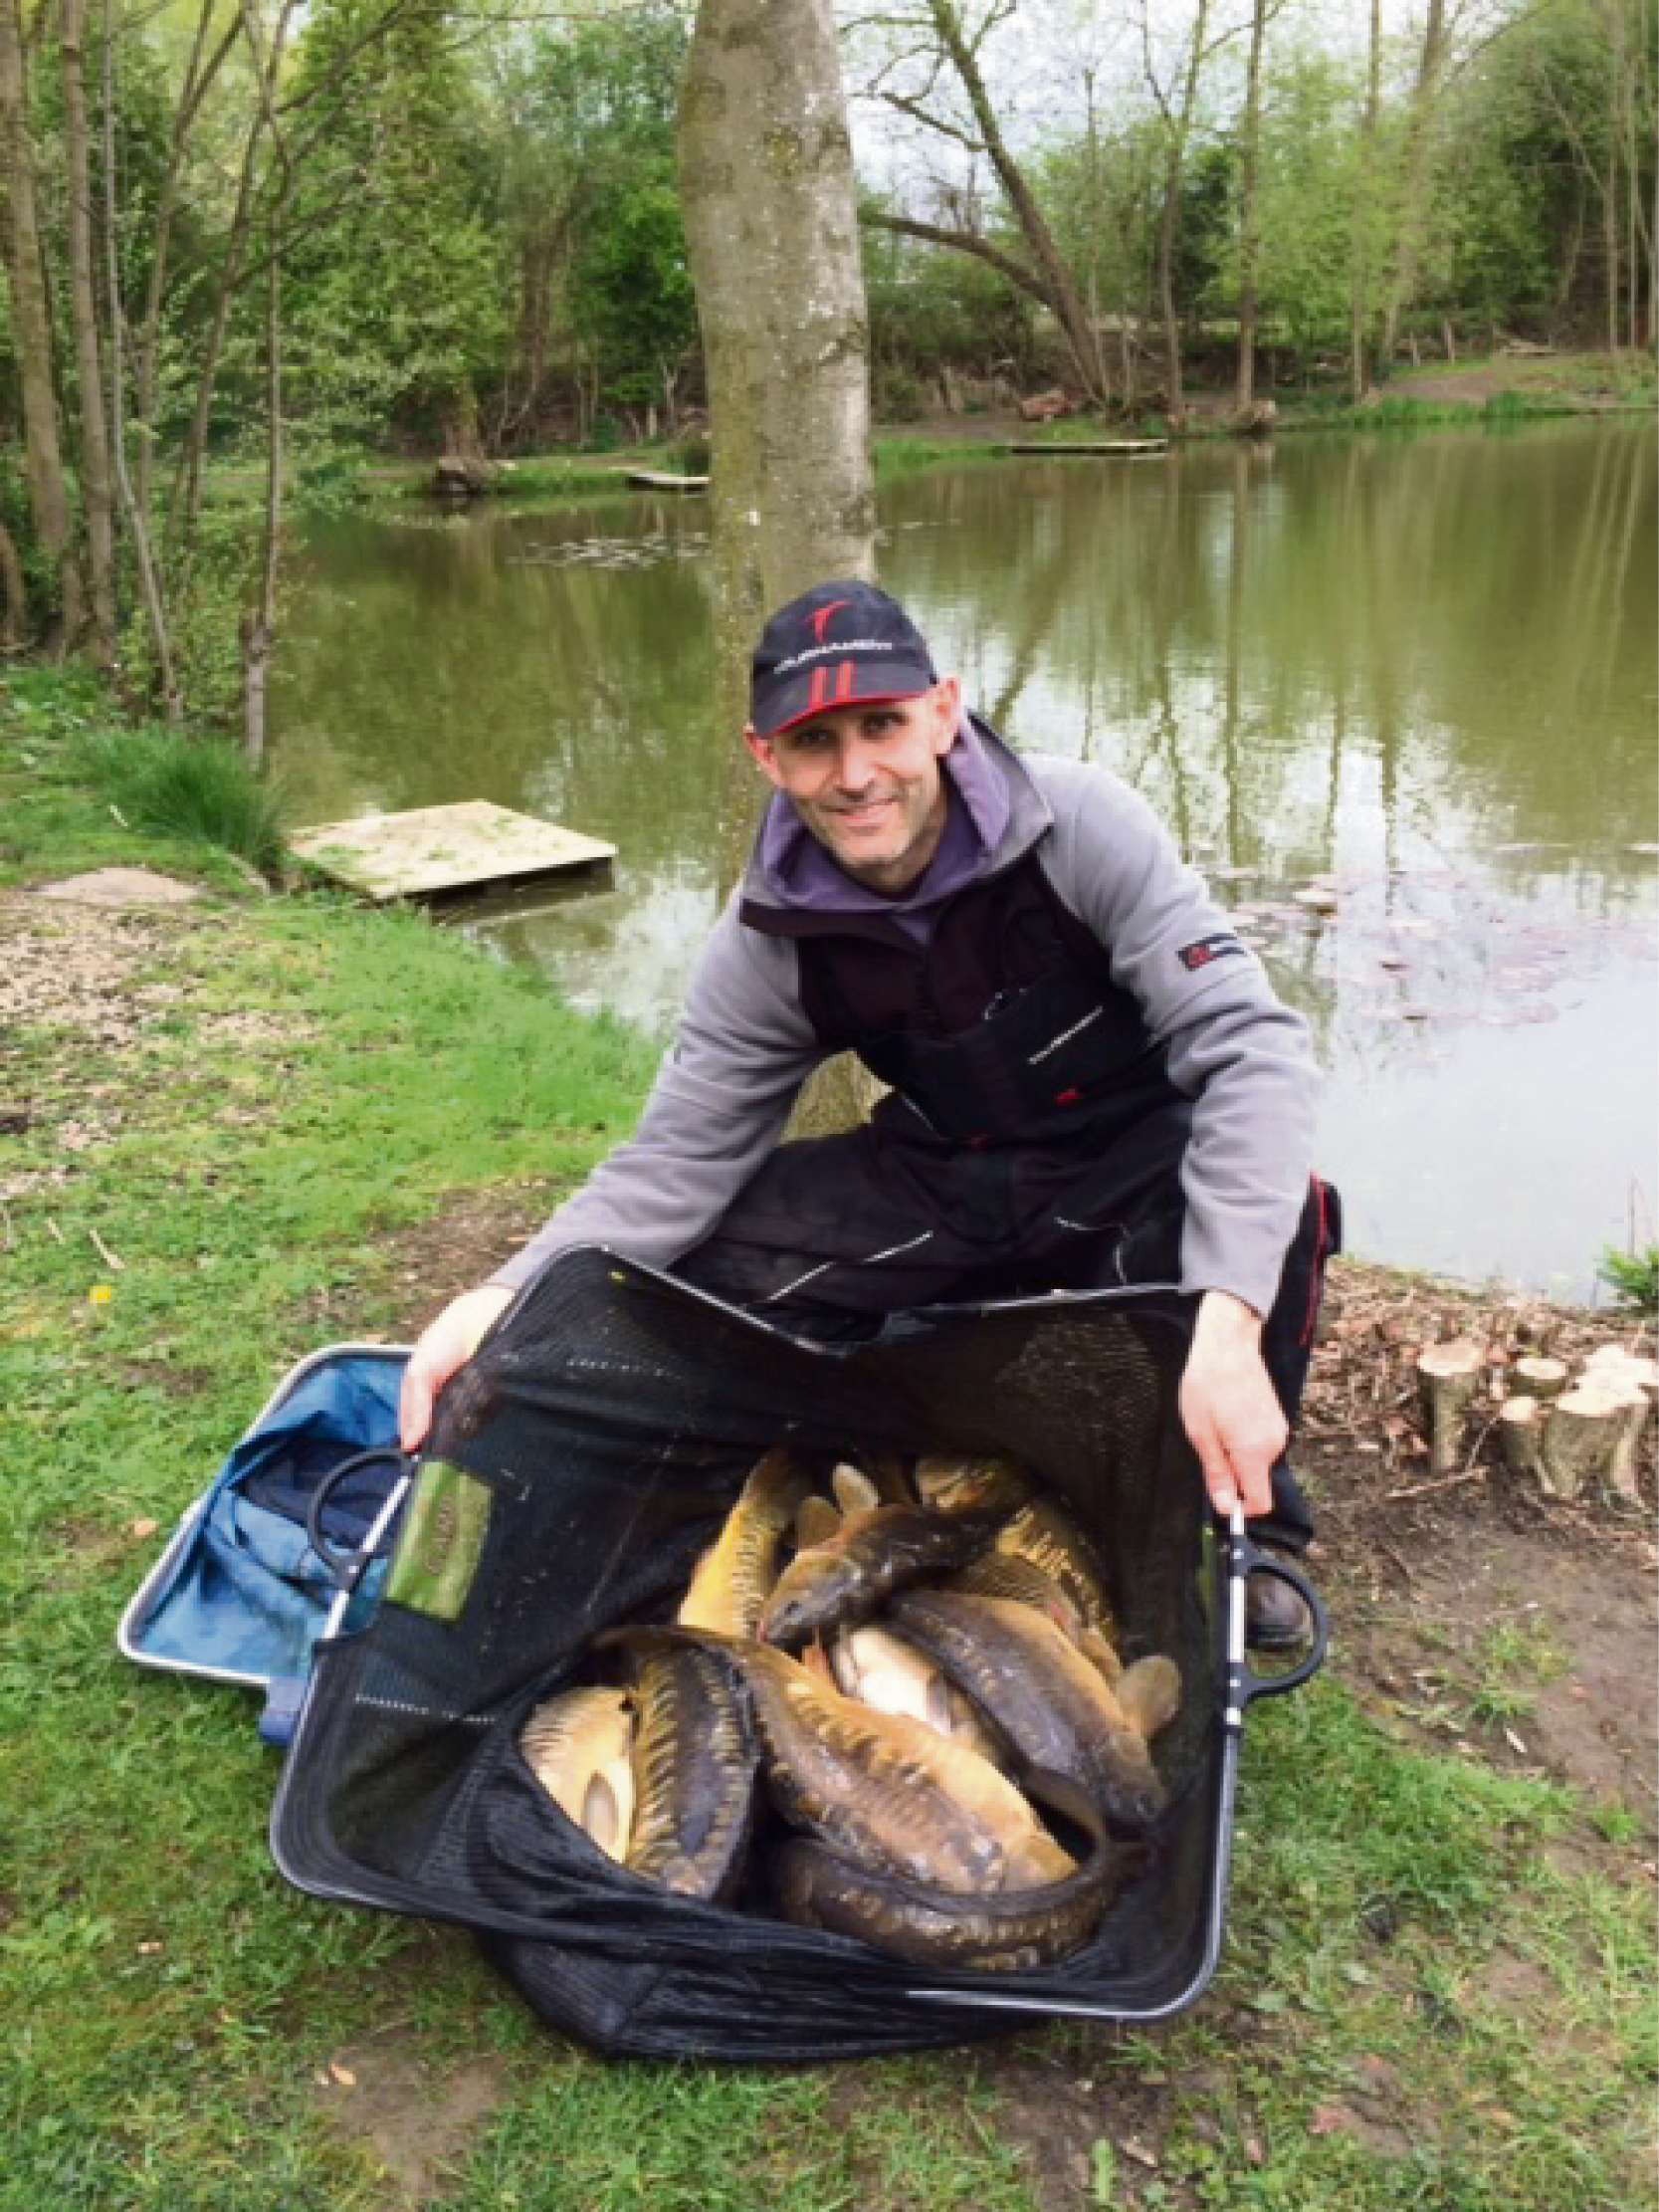 Grant Walker, winner of the Ray Thompson Memorial Fishing Match at Tollerton Ponds